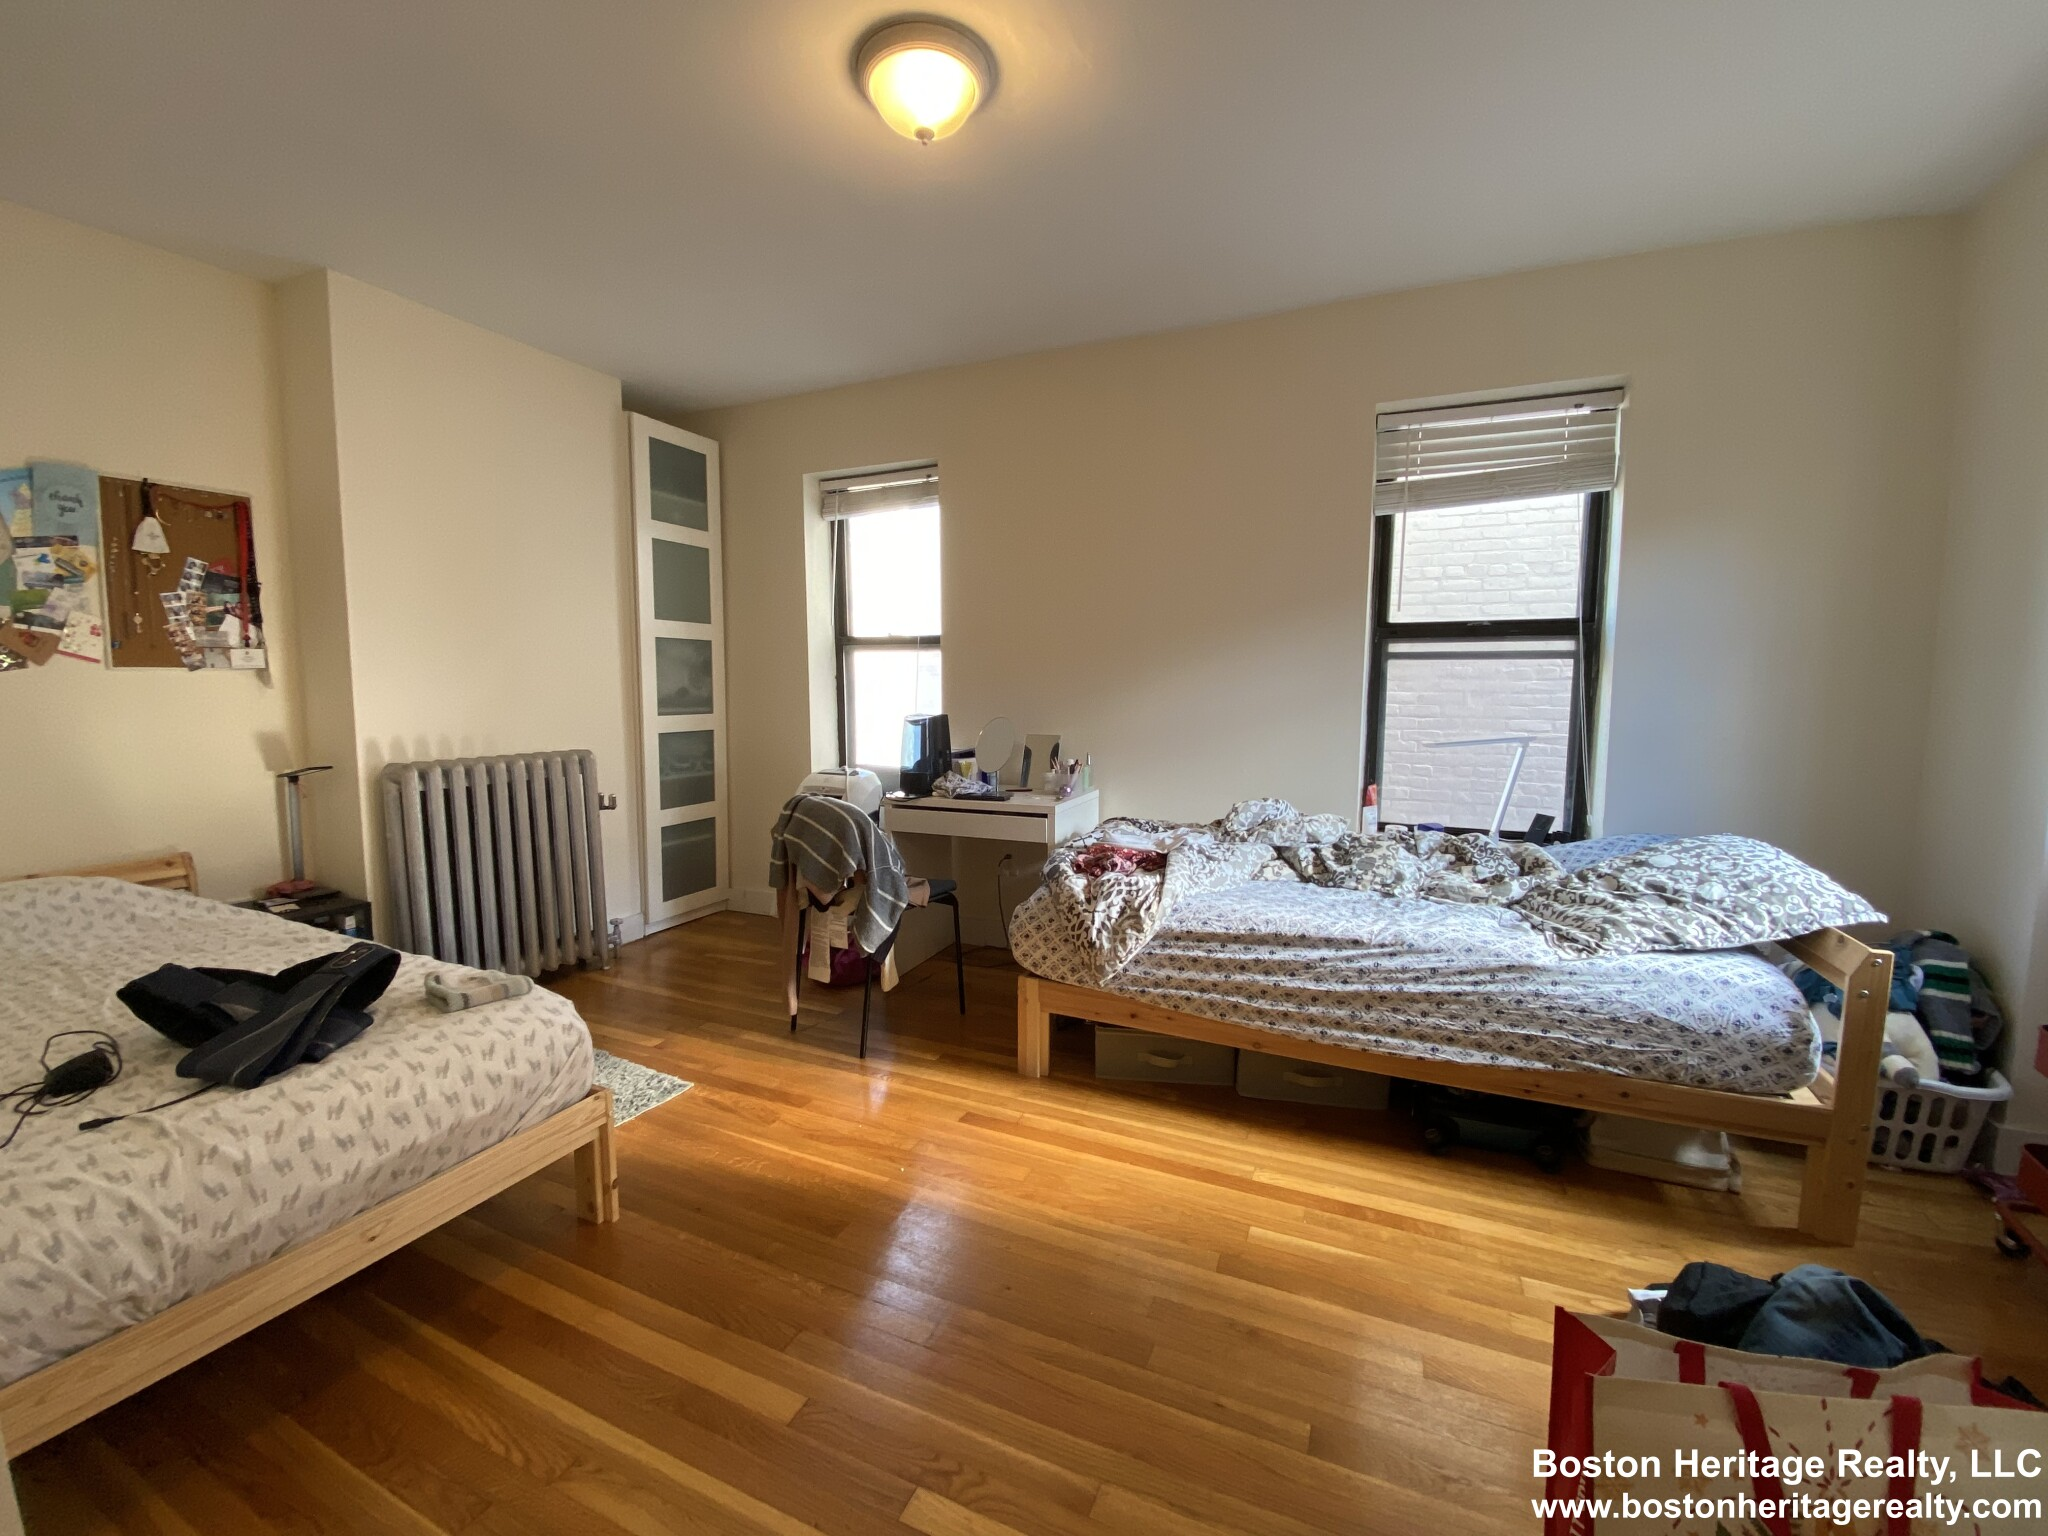 1 Bed, 1 Bath apartment in Boston, Fenway for $2,400